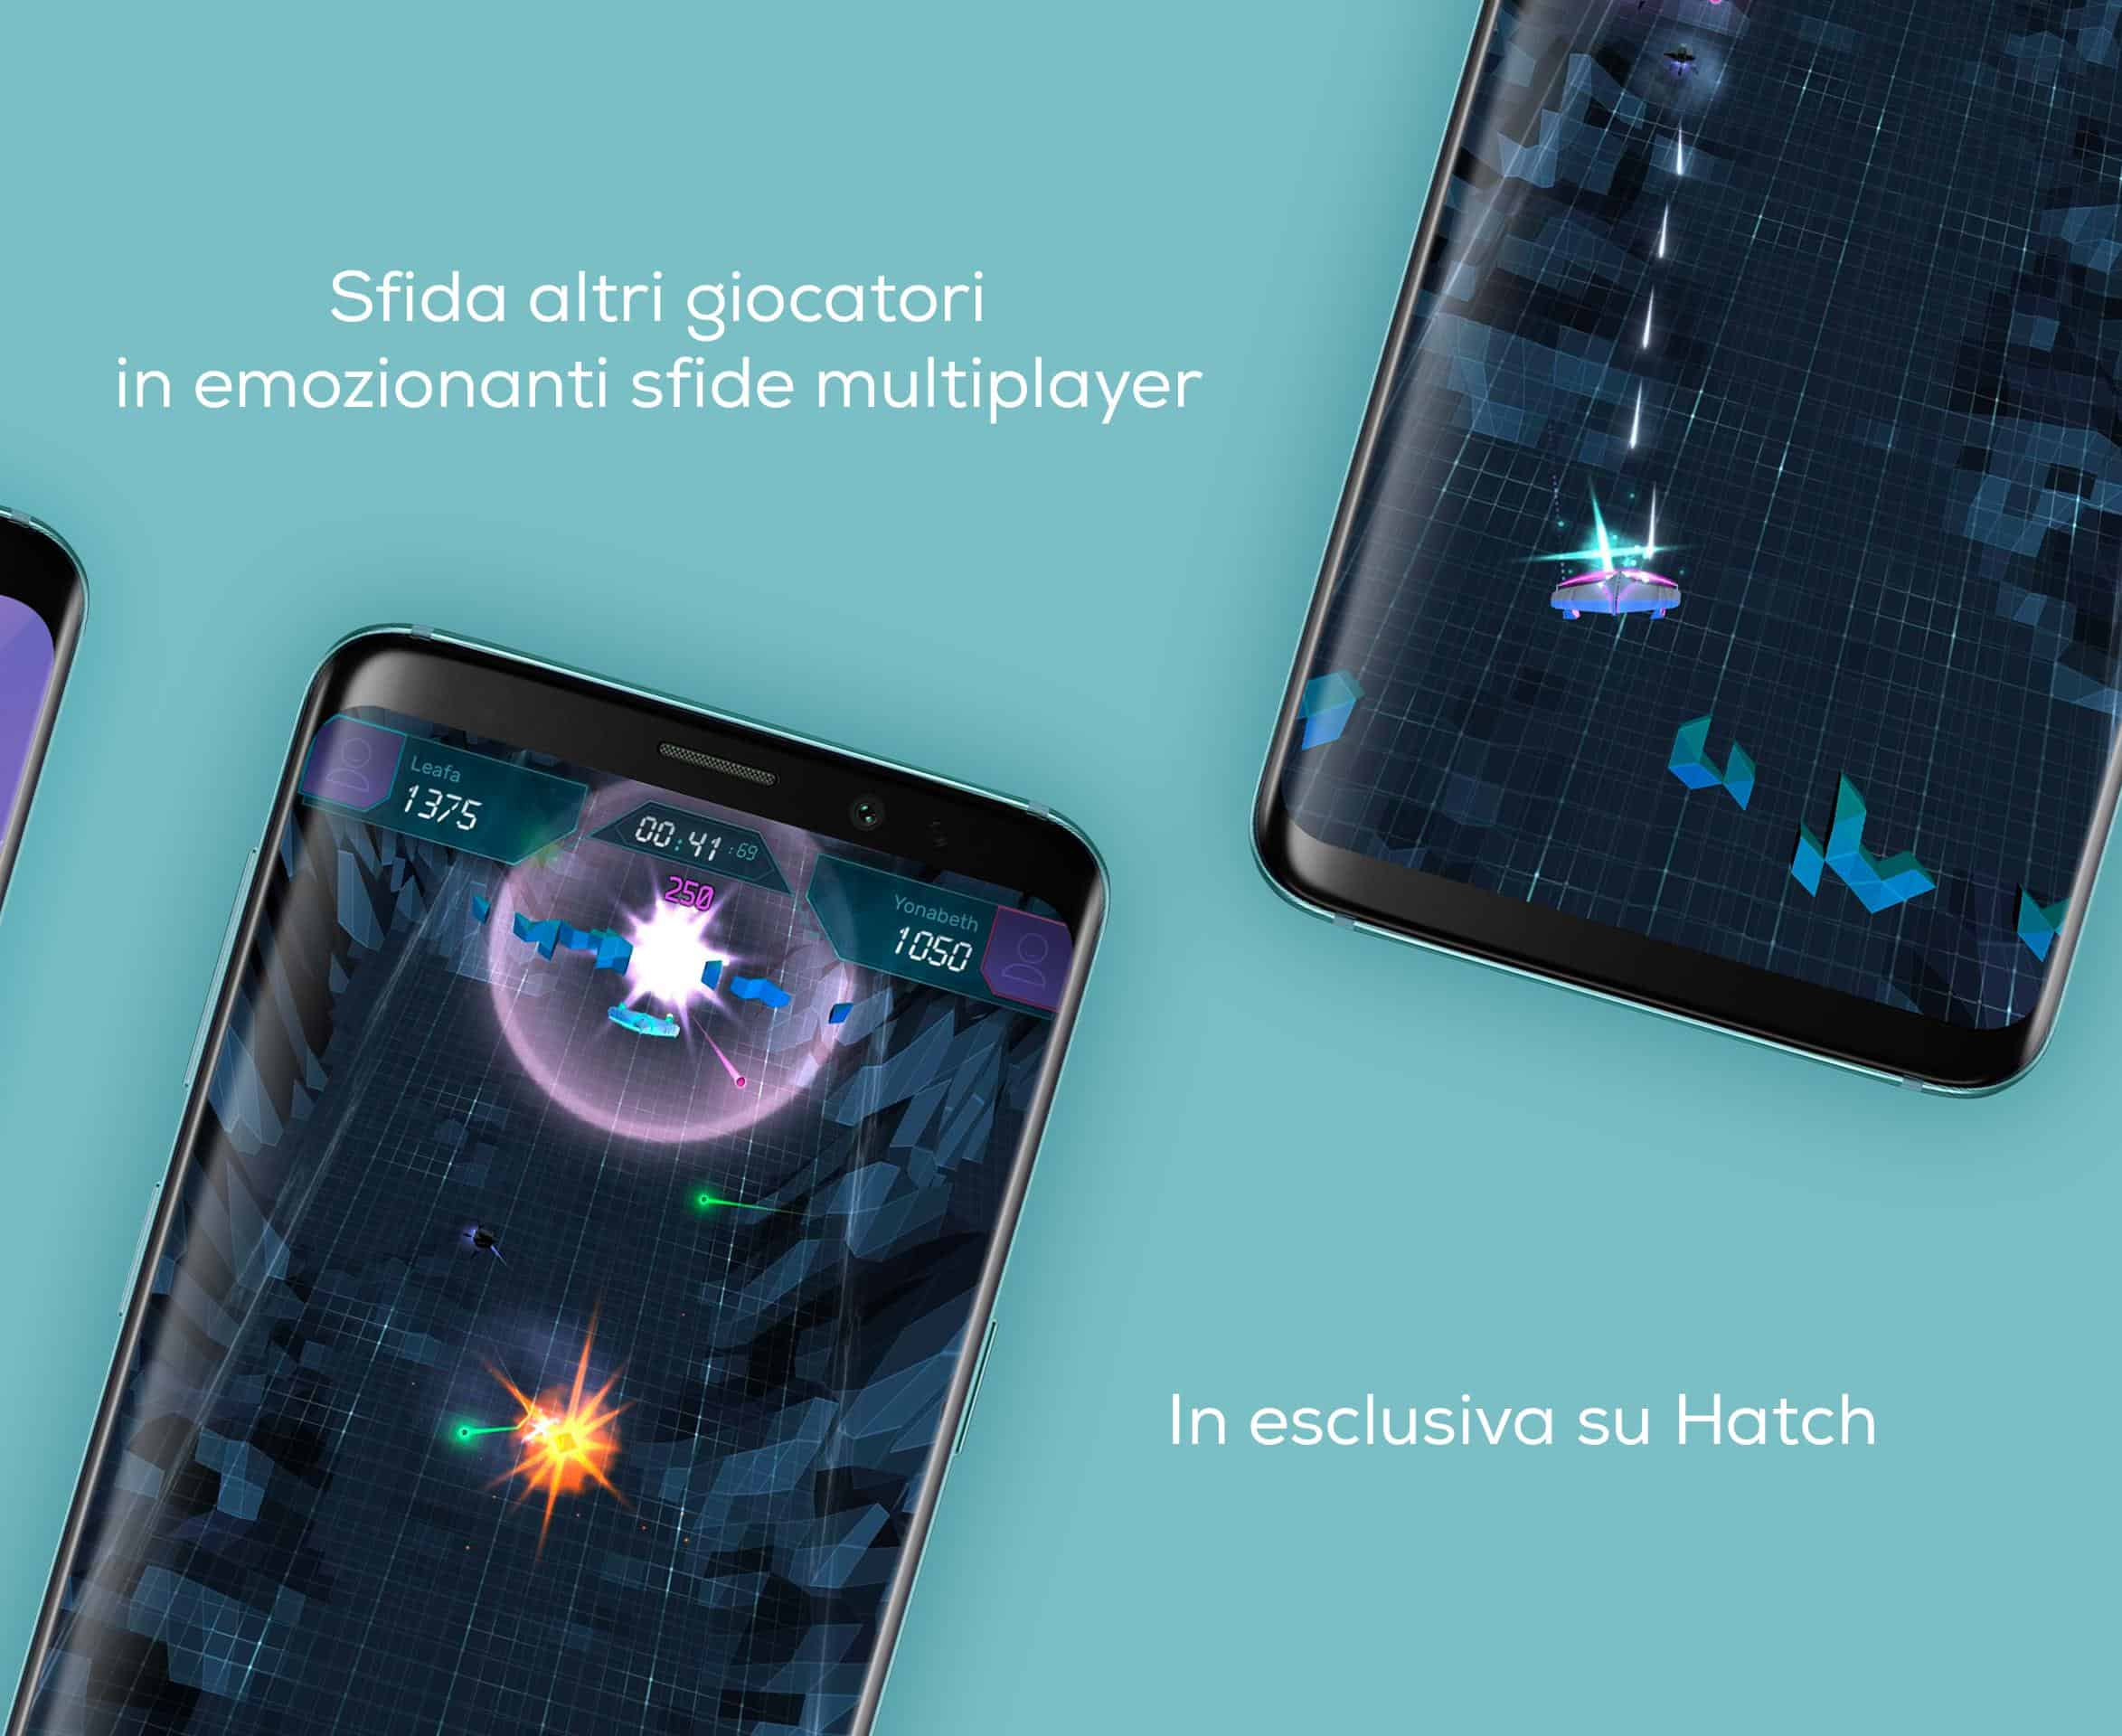 Hatch guida multiplayer android